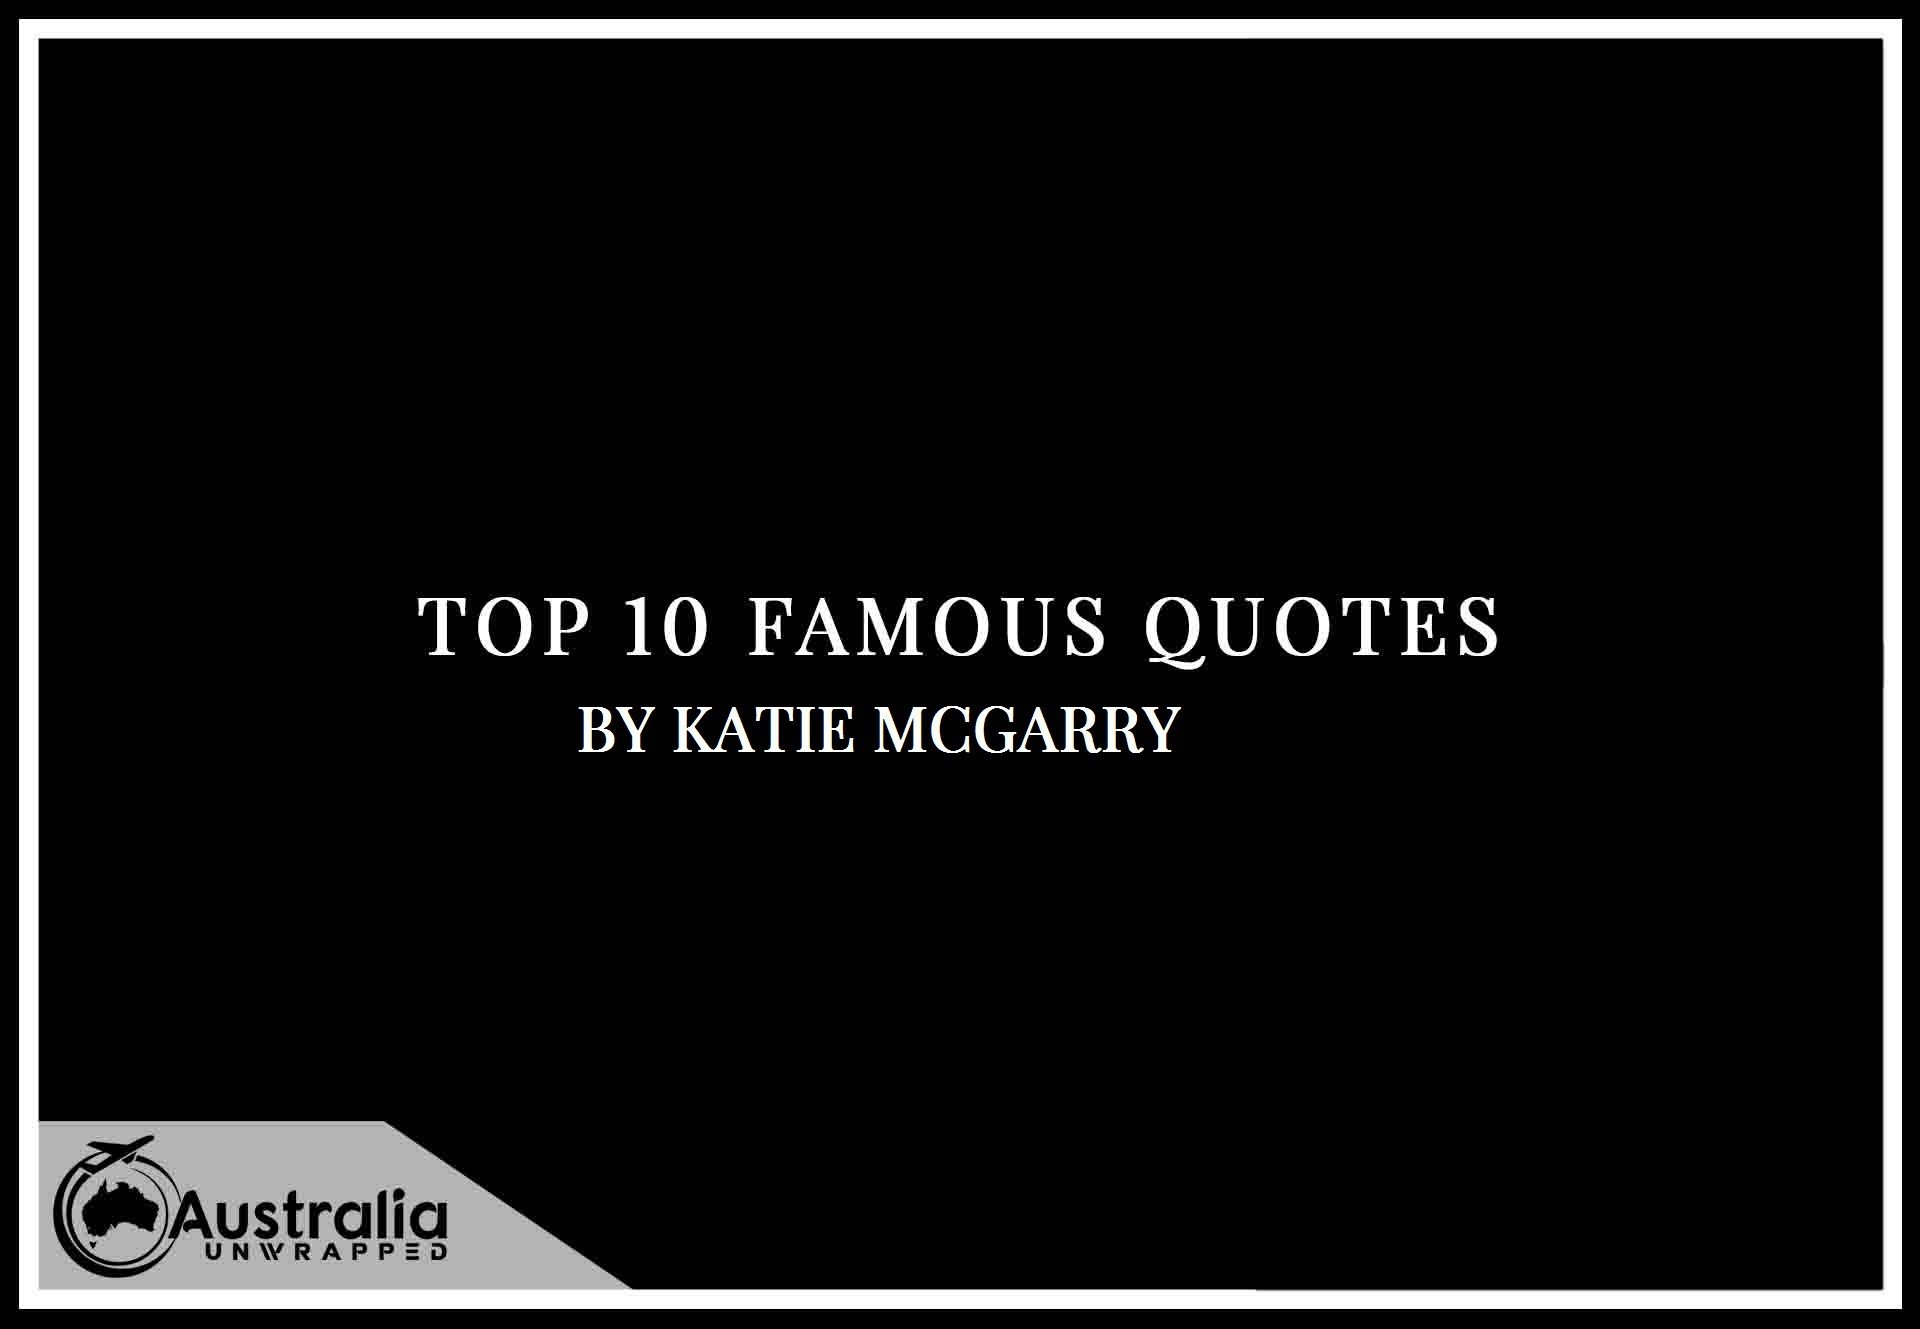 Katie McGarry's Top 10 Popular and Famous Quotes